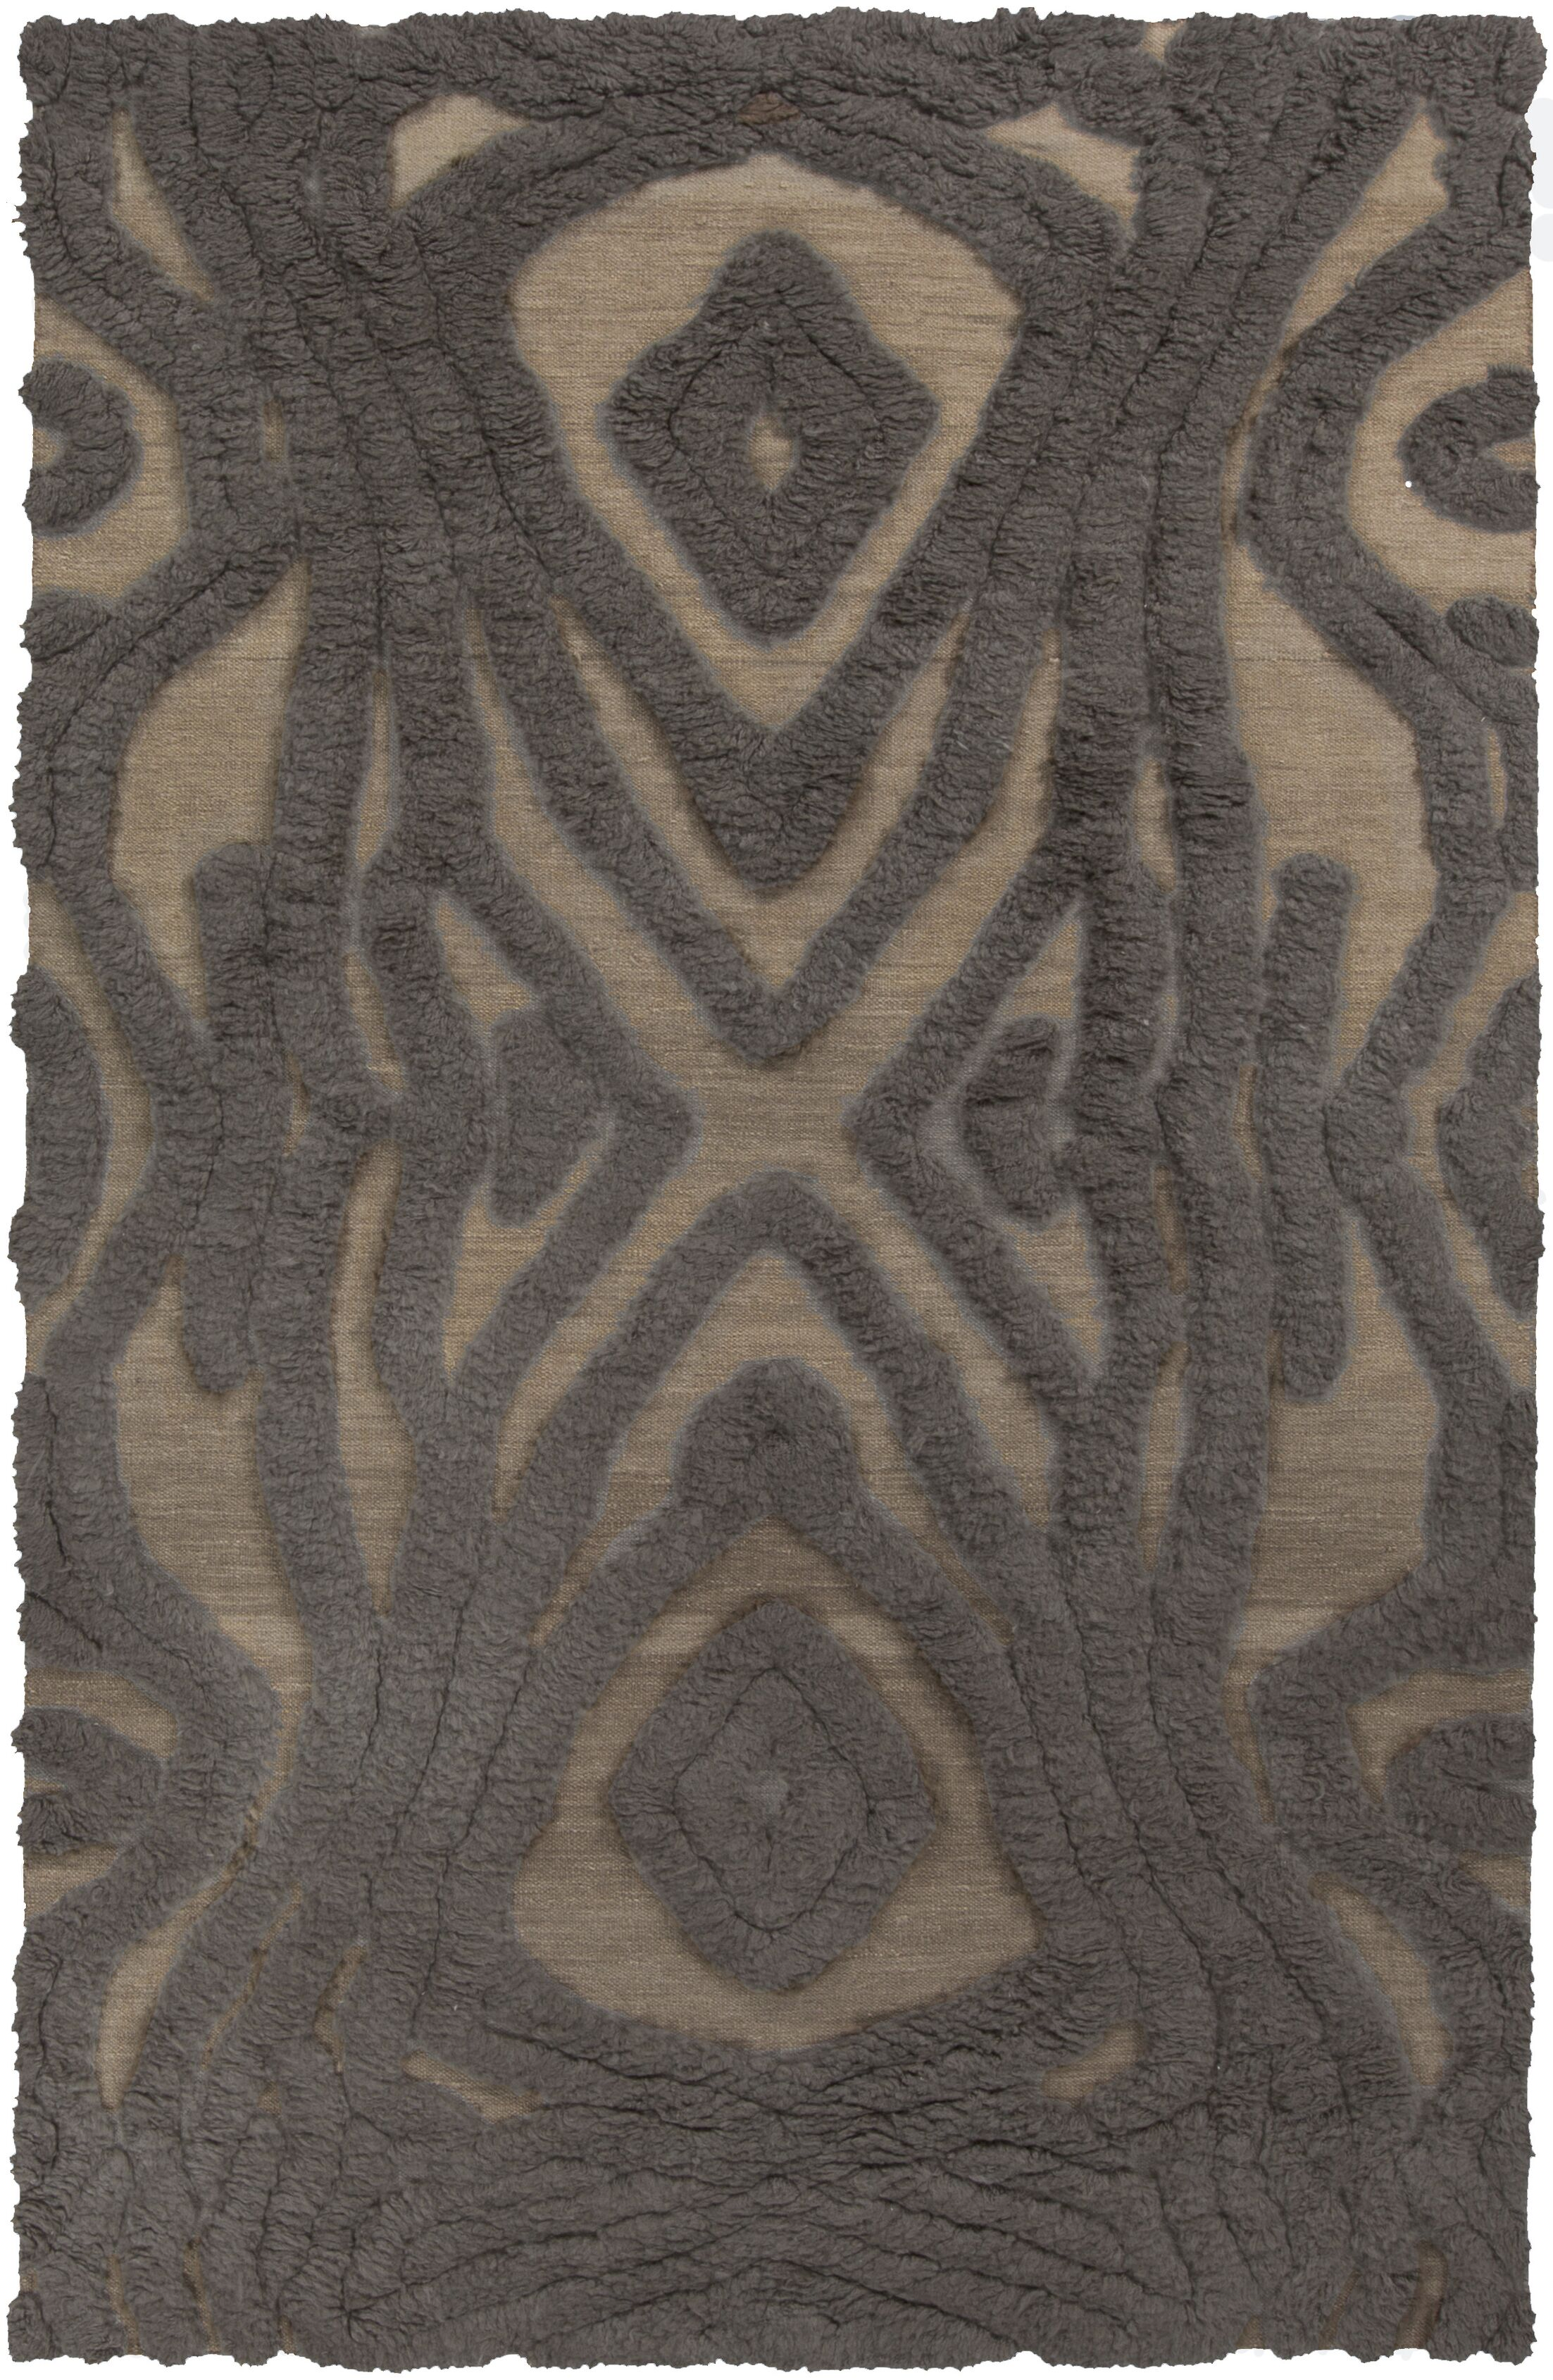 Aubriana Hand Woven Wool Brown Area Rug Rug Size: Rectangle 8' x 11'